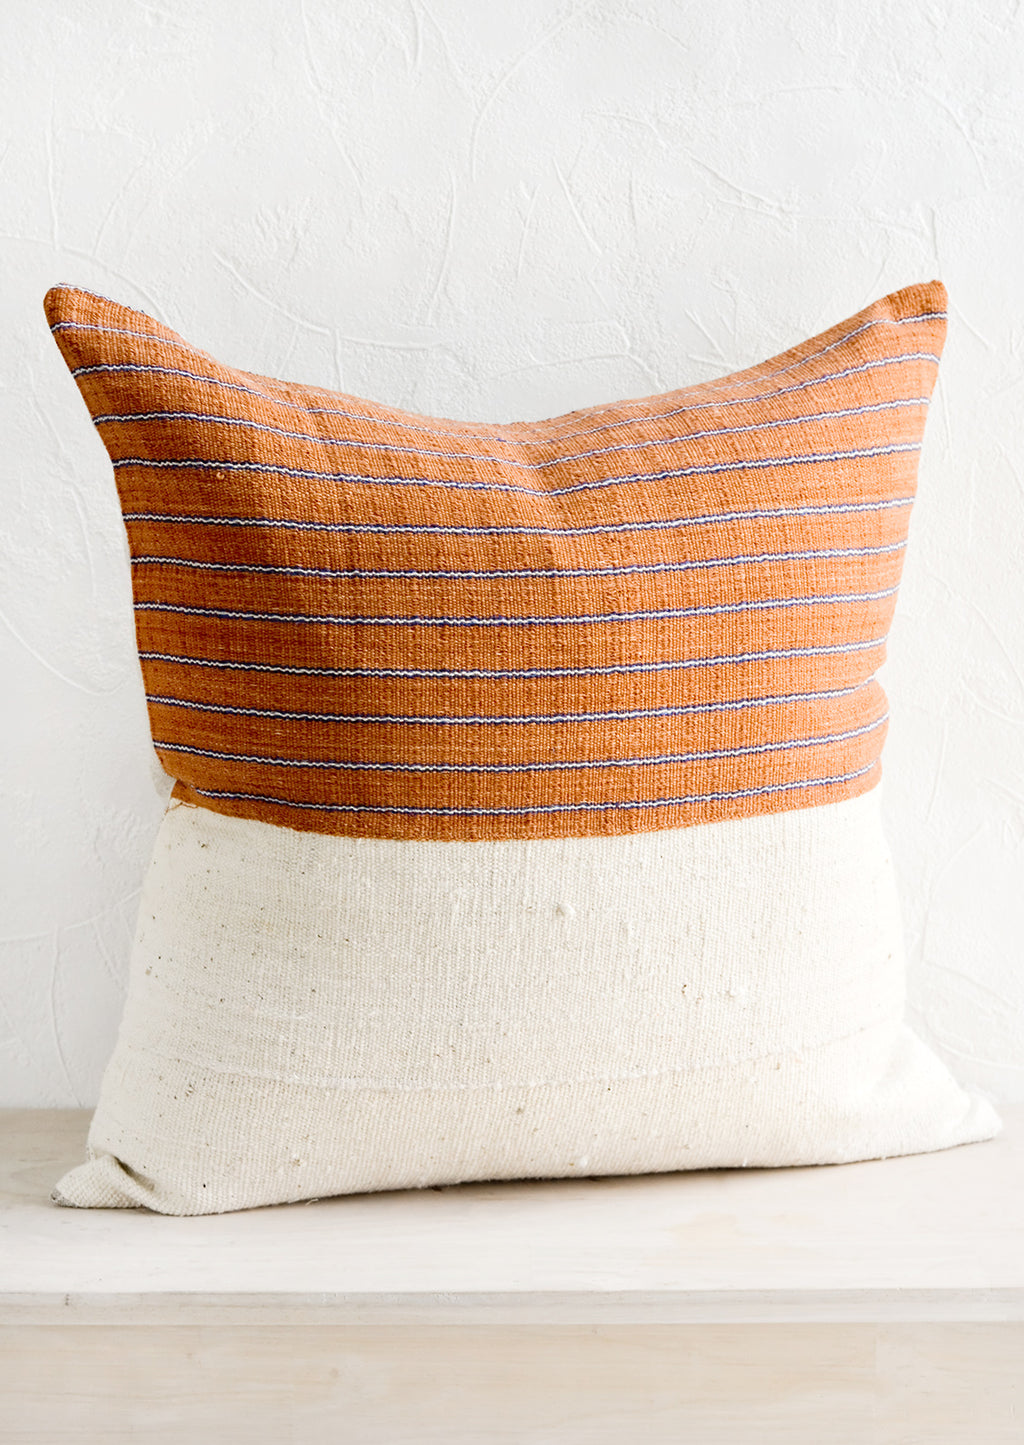 2: A throw pillow with top half in rust & indigo striped fabric and bottom half in natural mudcloth.